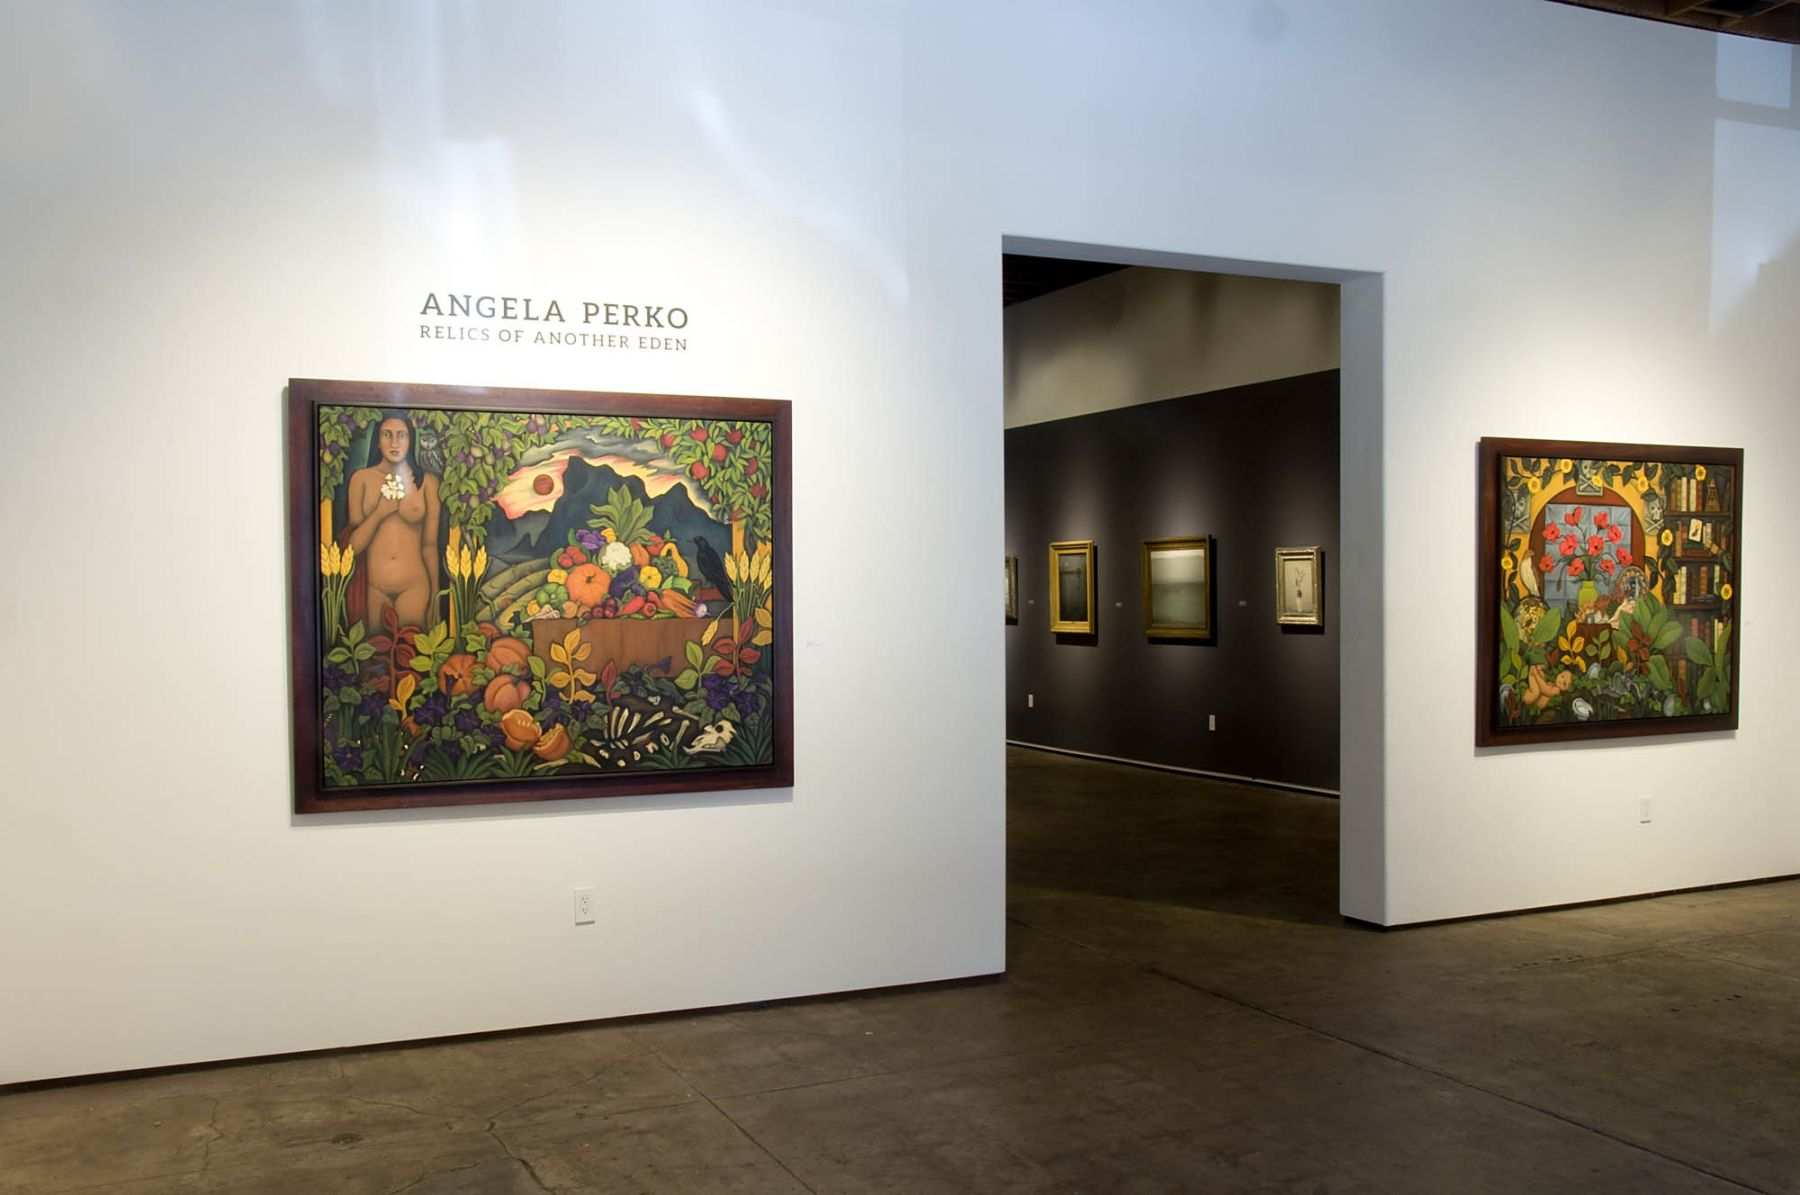 Angela Perko: Relics from Another Eden